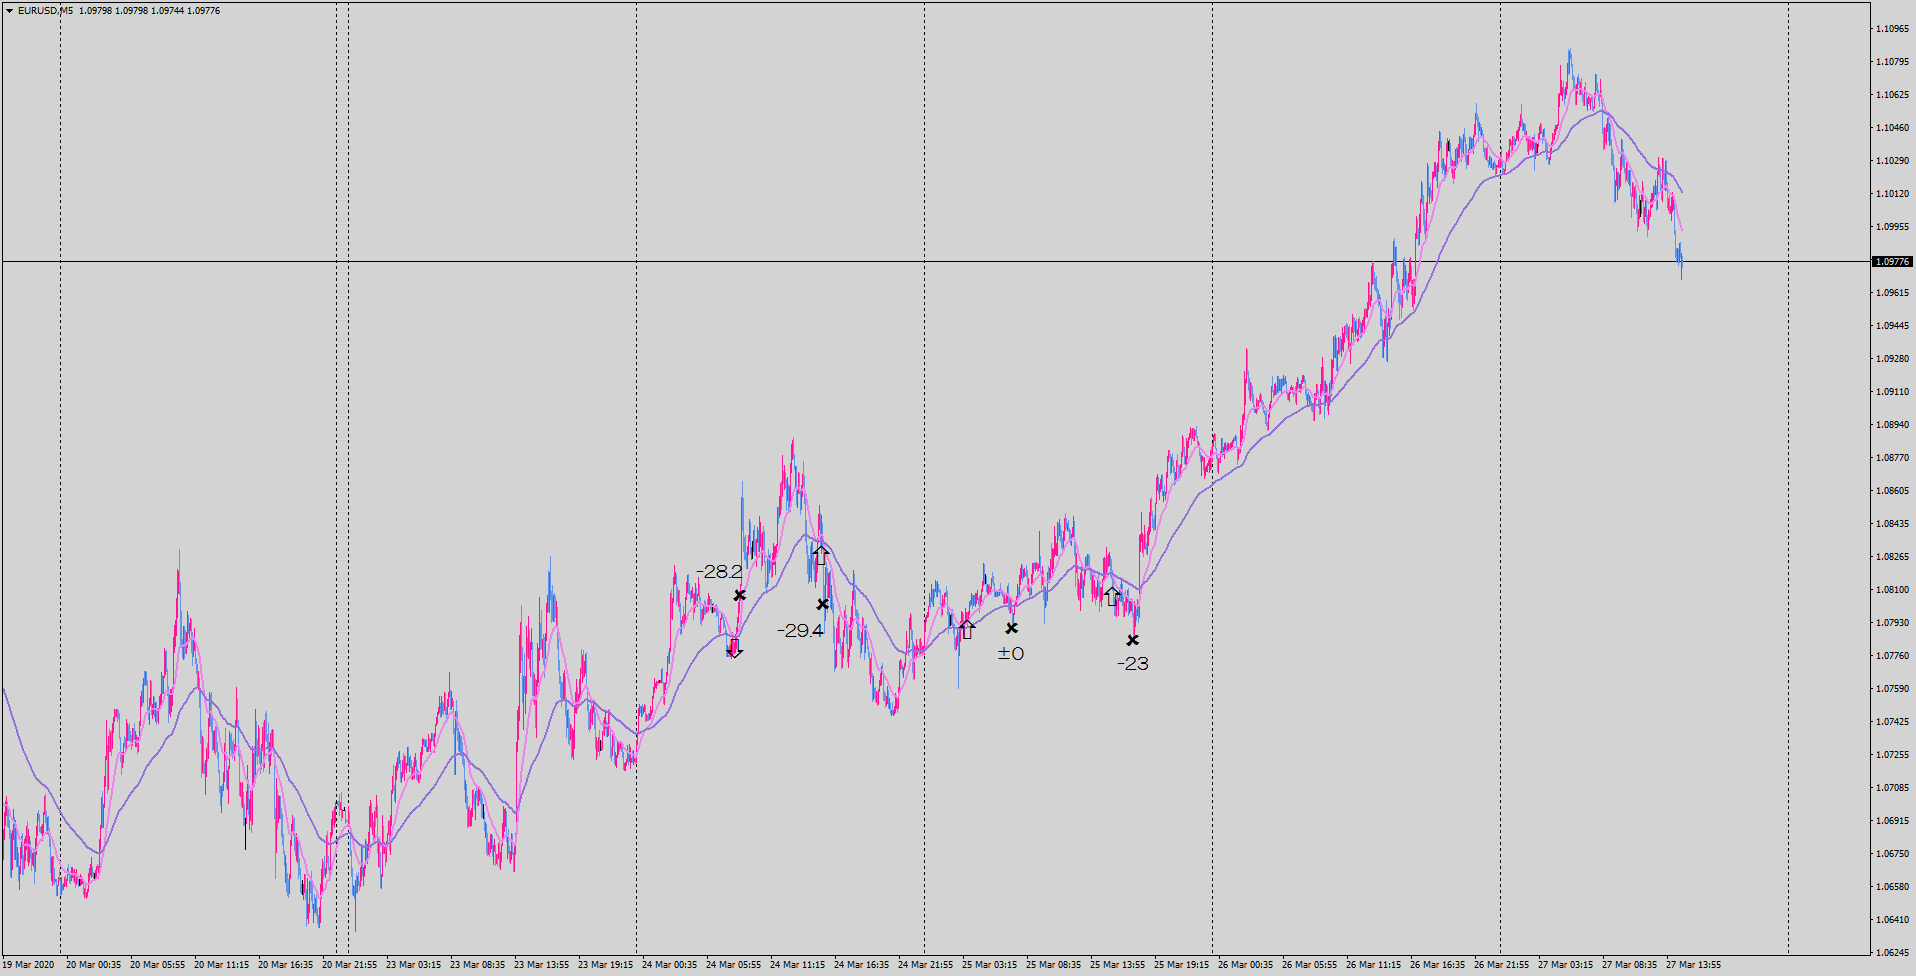 20-03-27-eurusd-m5-tradexfin-limited.png